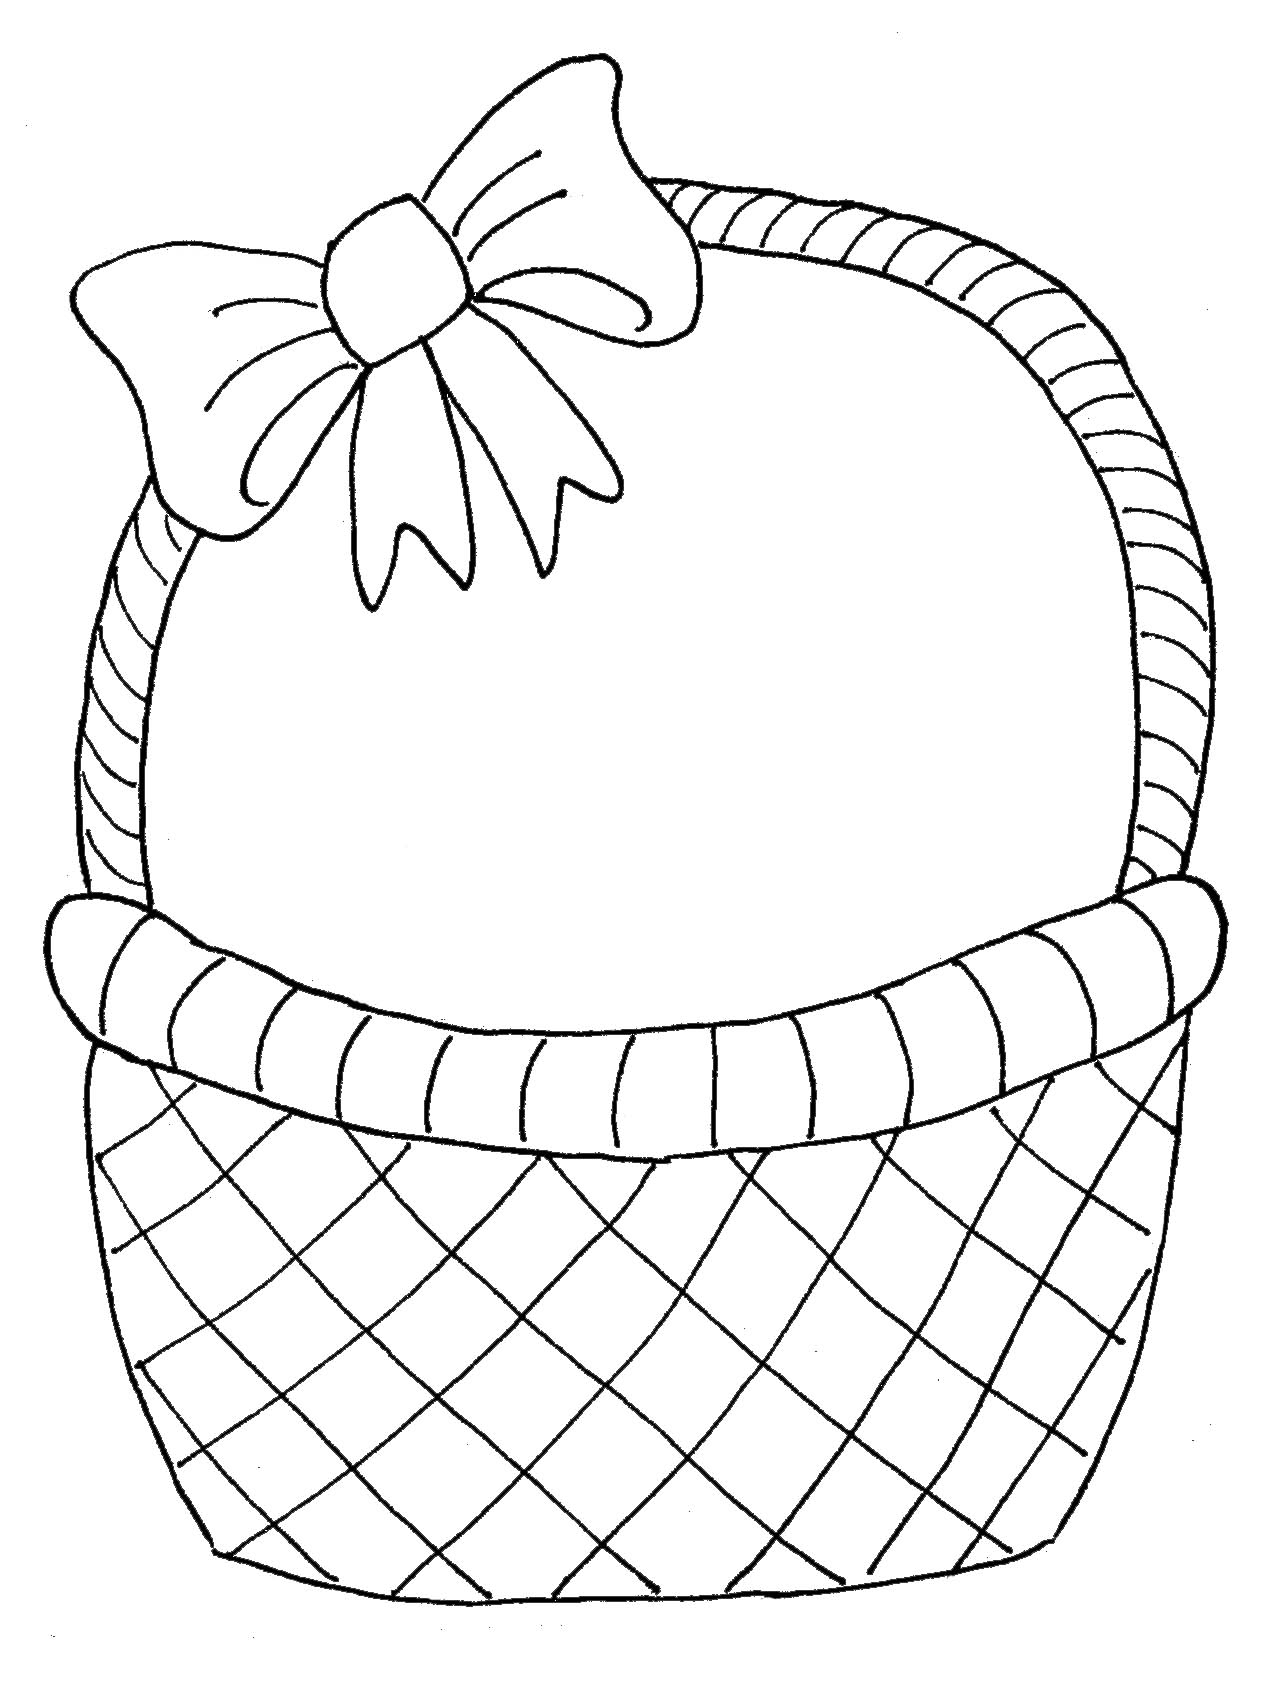 How to draw a basket 15